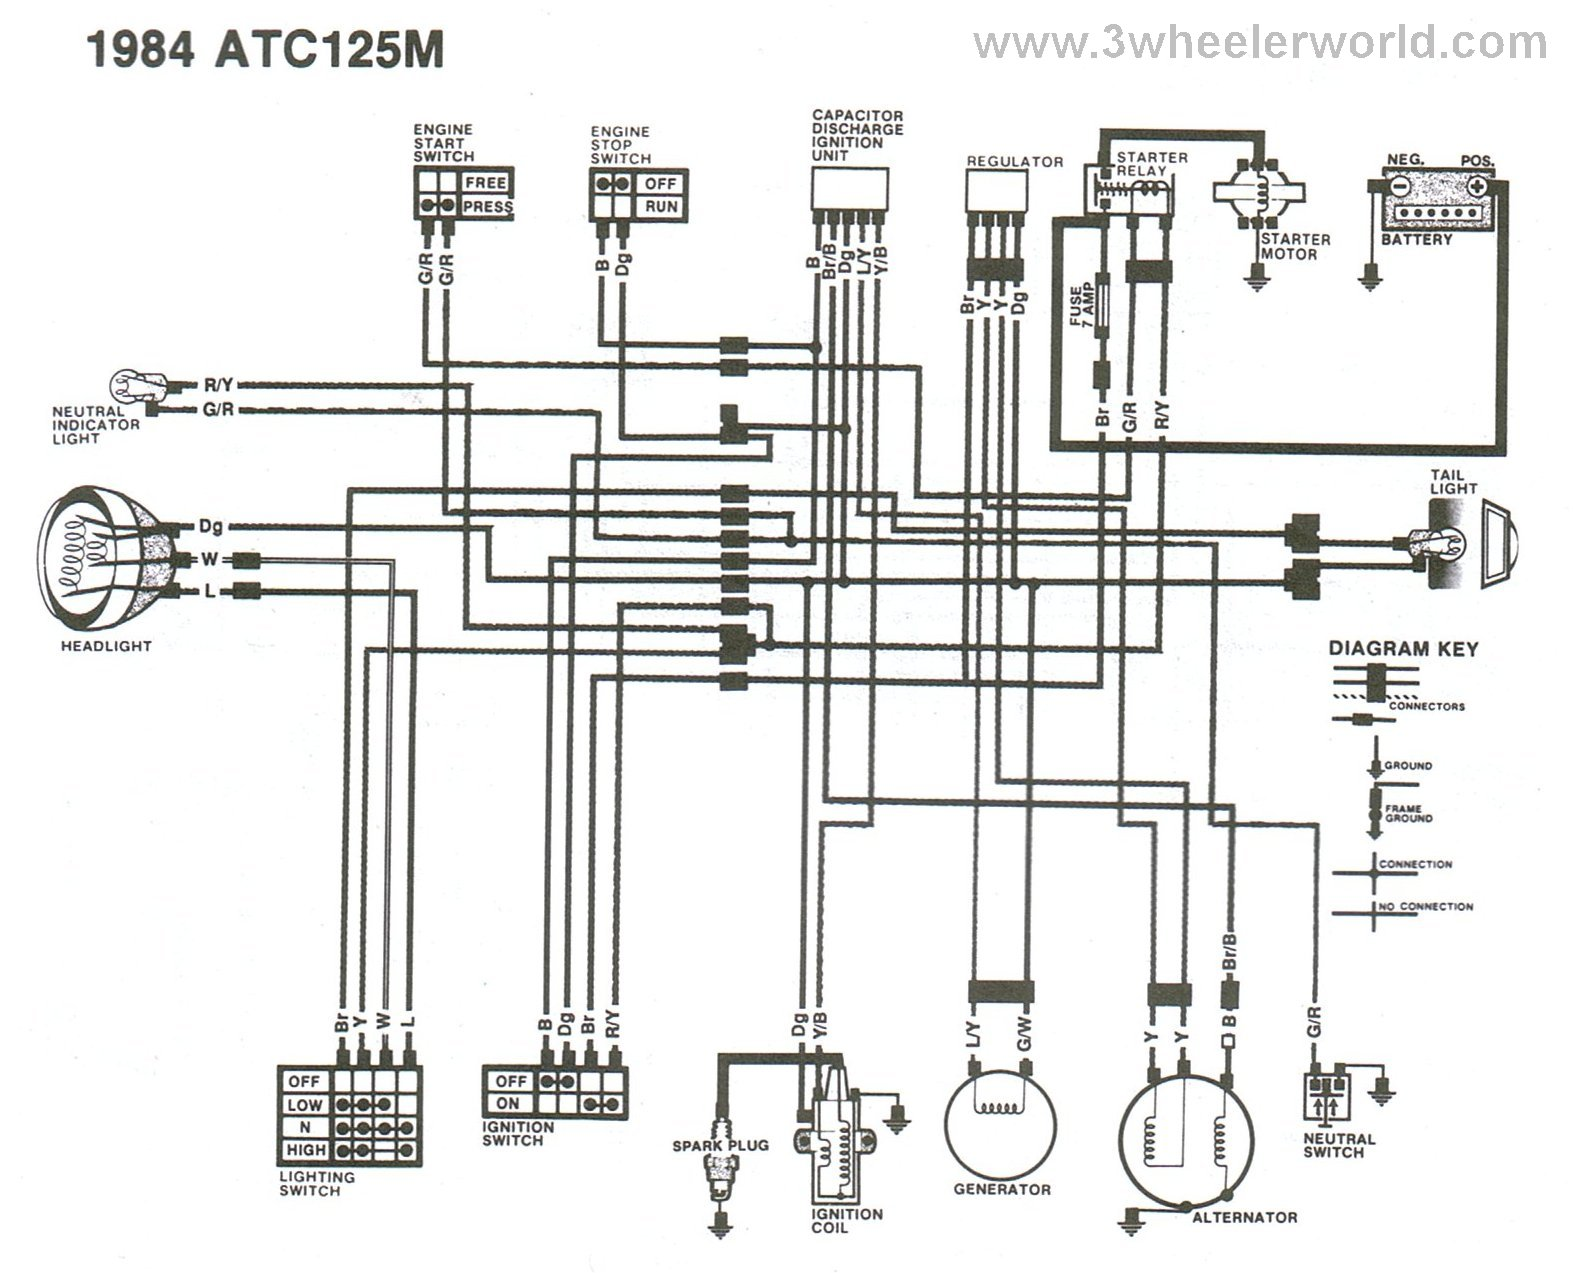 1974 honda cb450 wiring diagram 3wheeler world - 125m honda 250ex wiring diagram